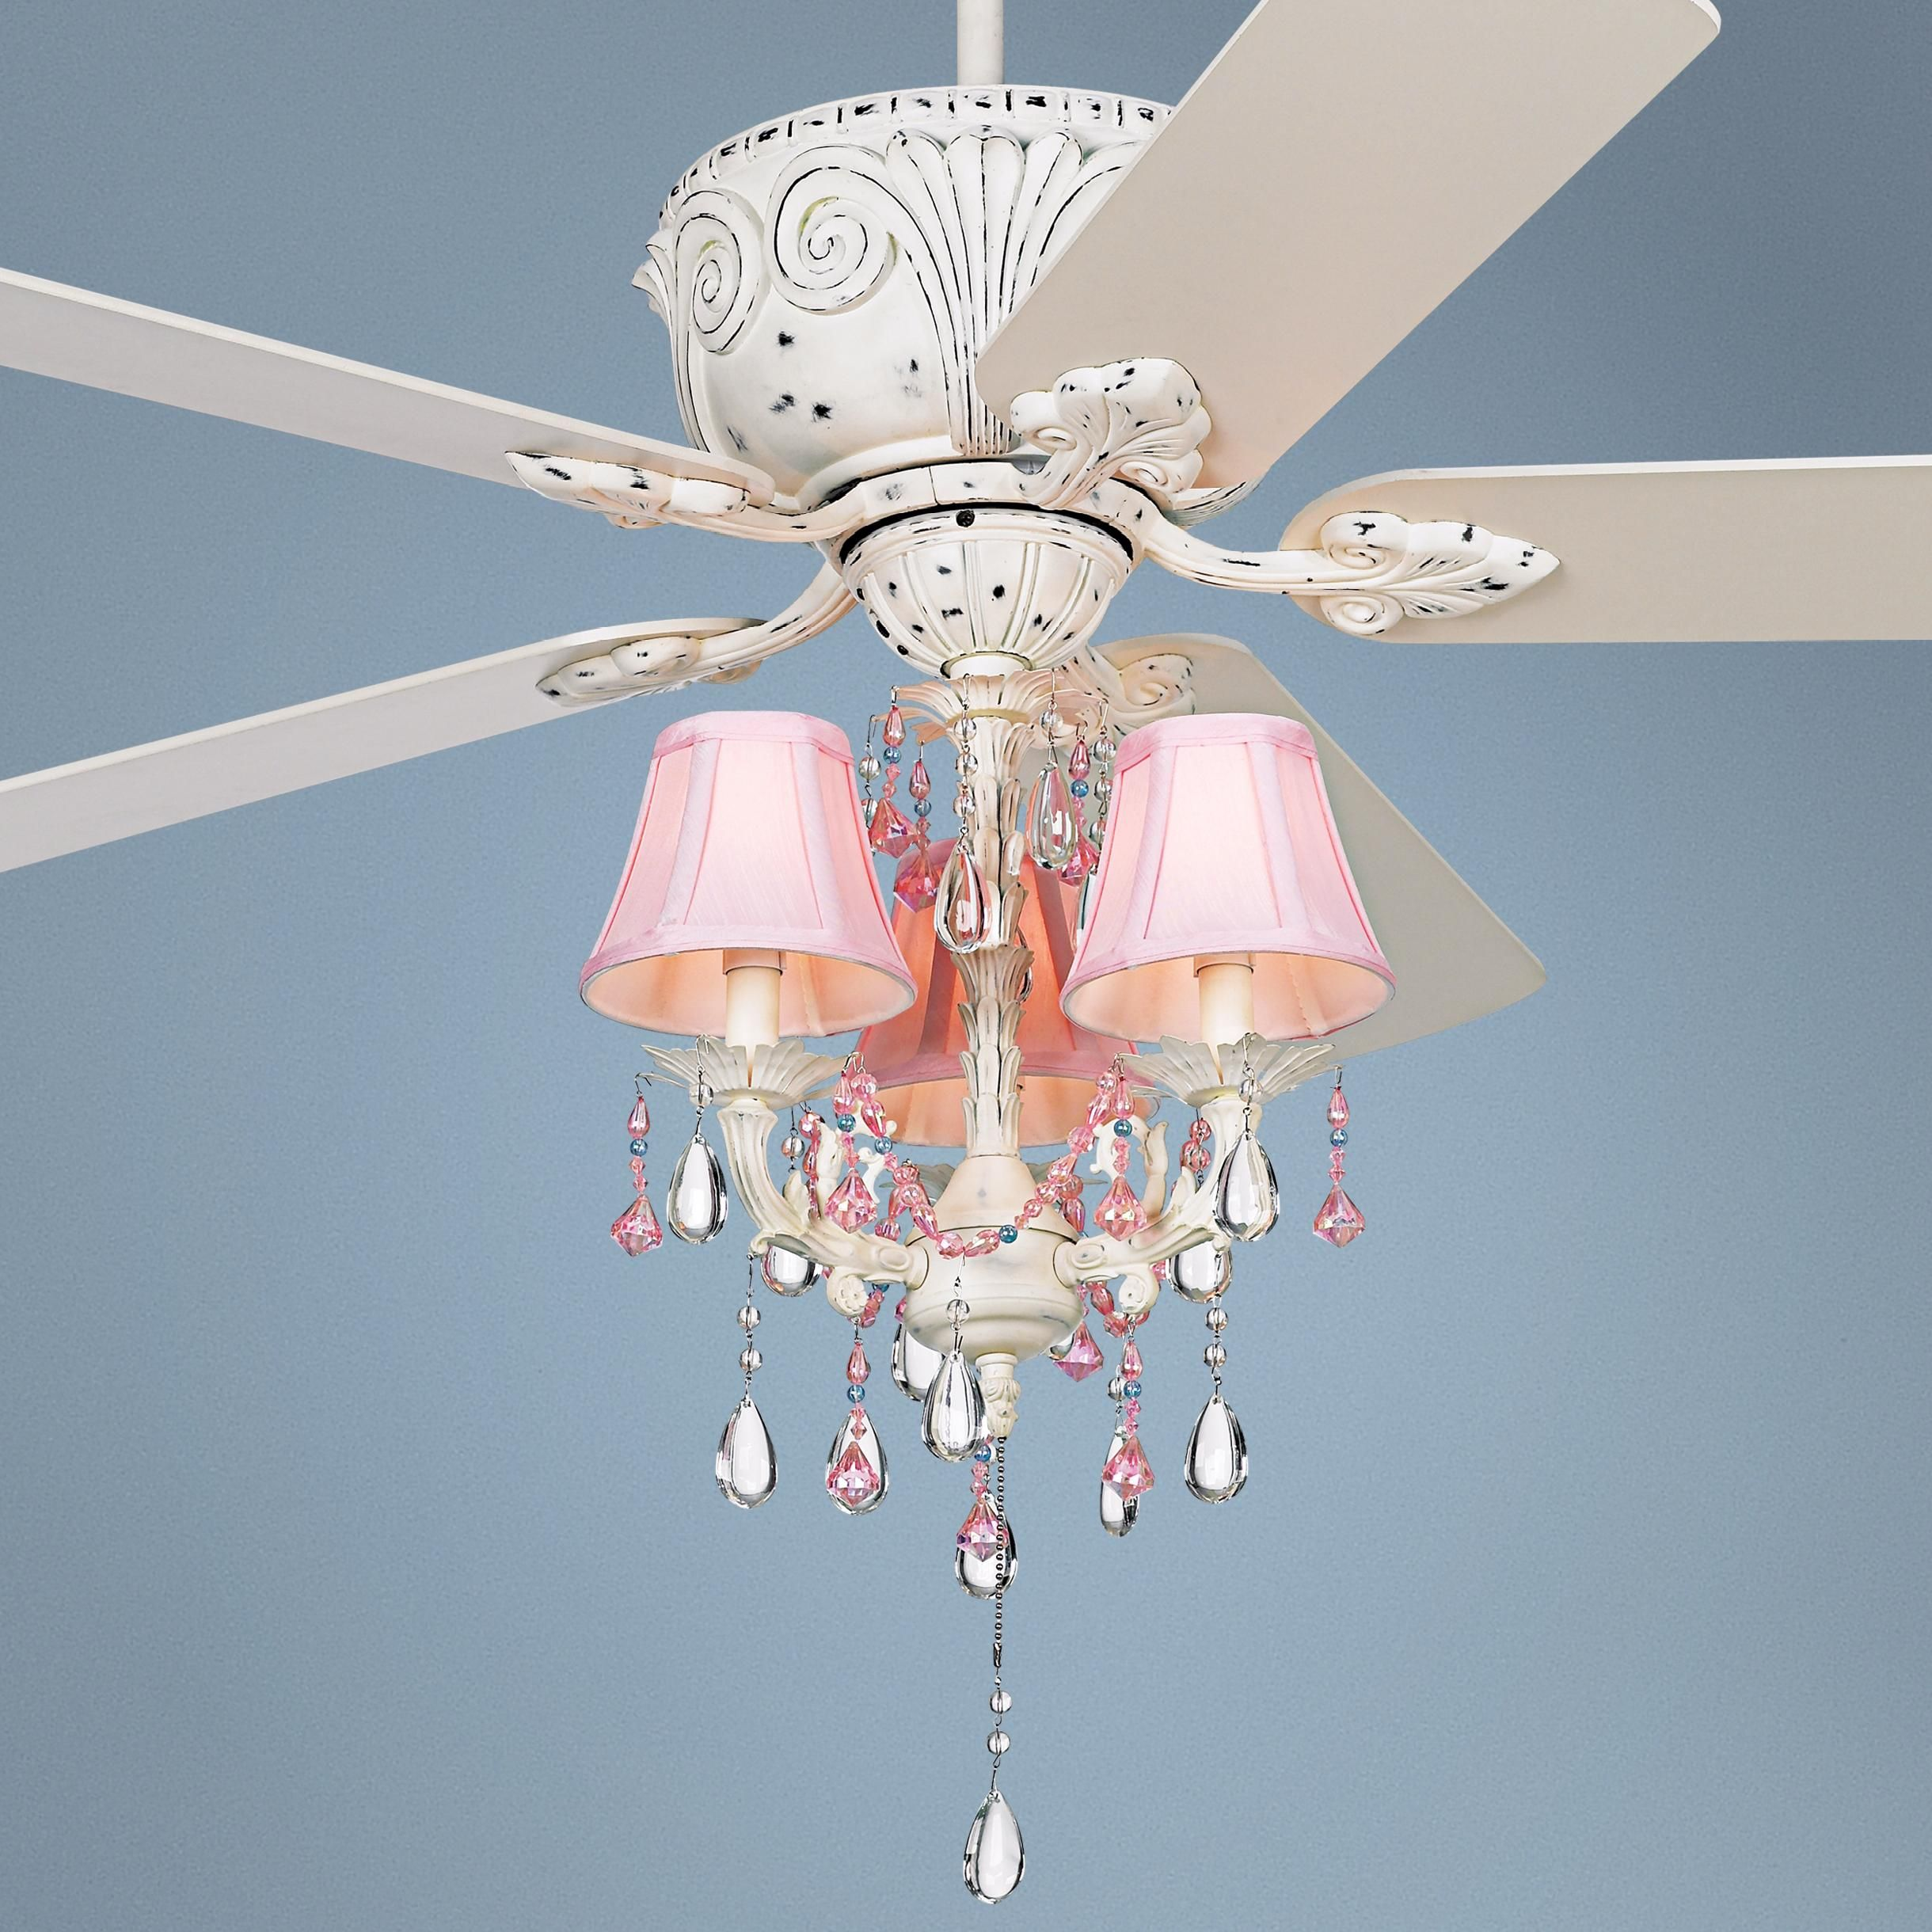 Pull Chain Ceiling Light Fixture Delectable Casa Deville™ Pretty In Pink Pull Chain Ceiling Fan  Lighting